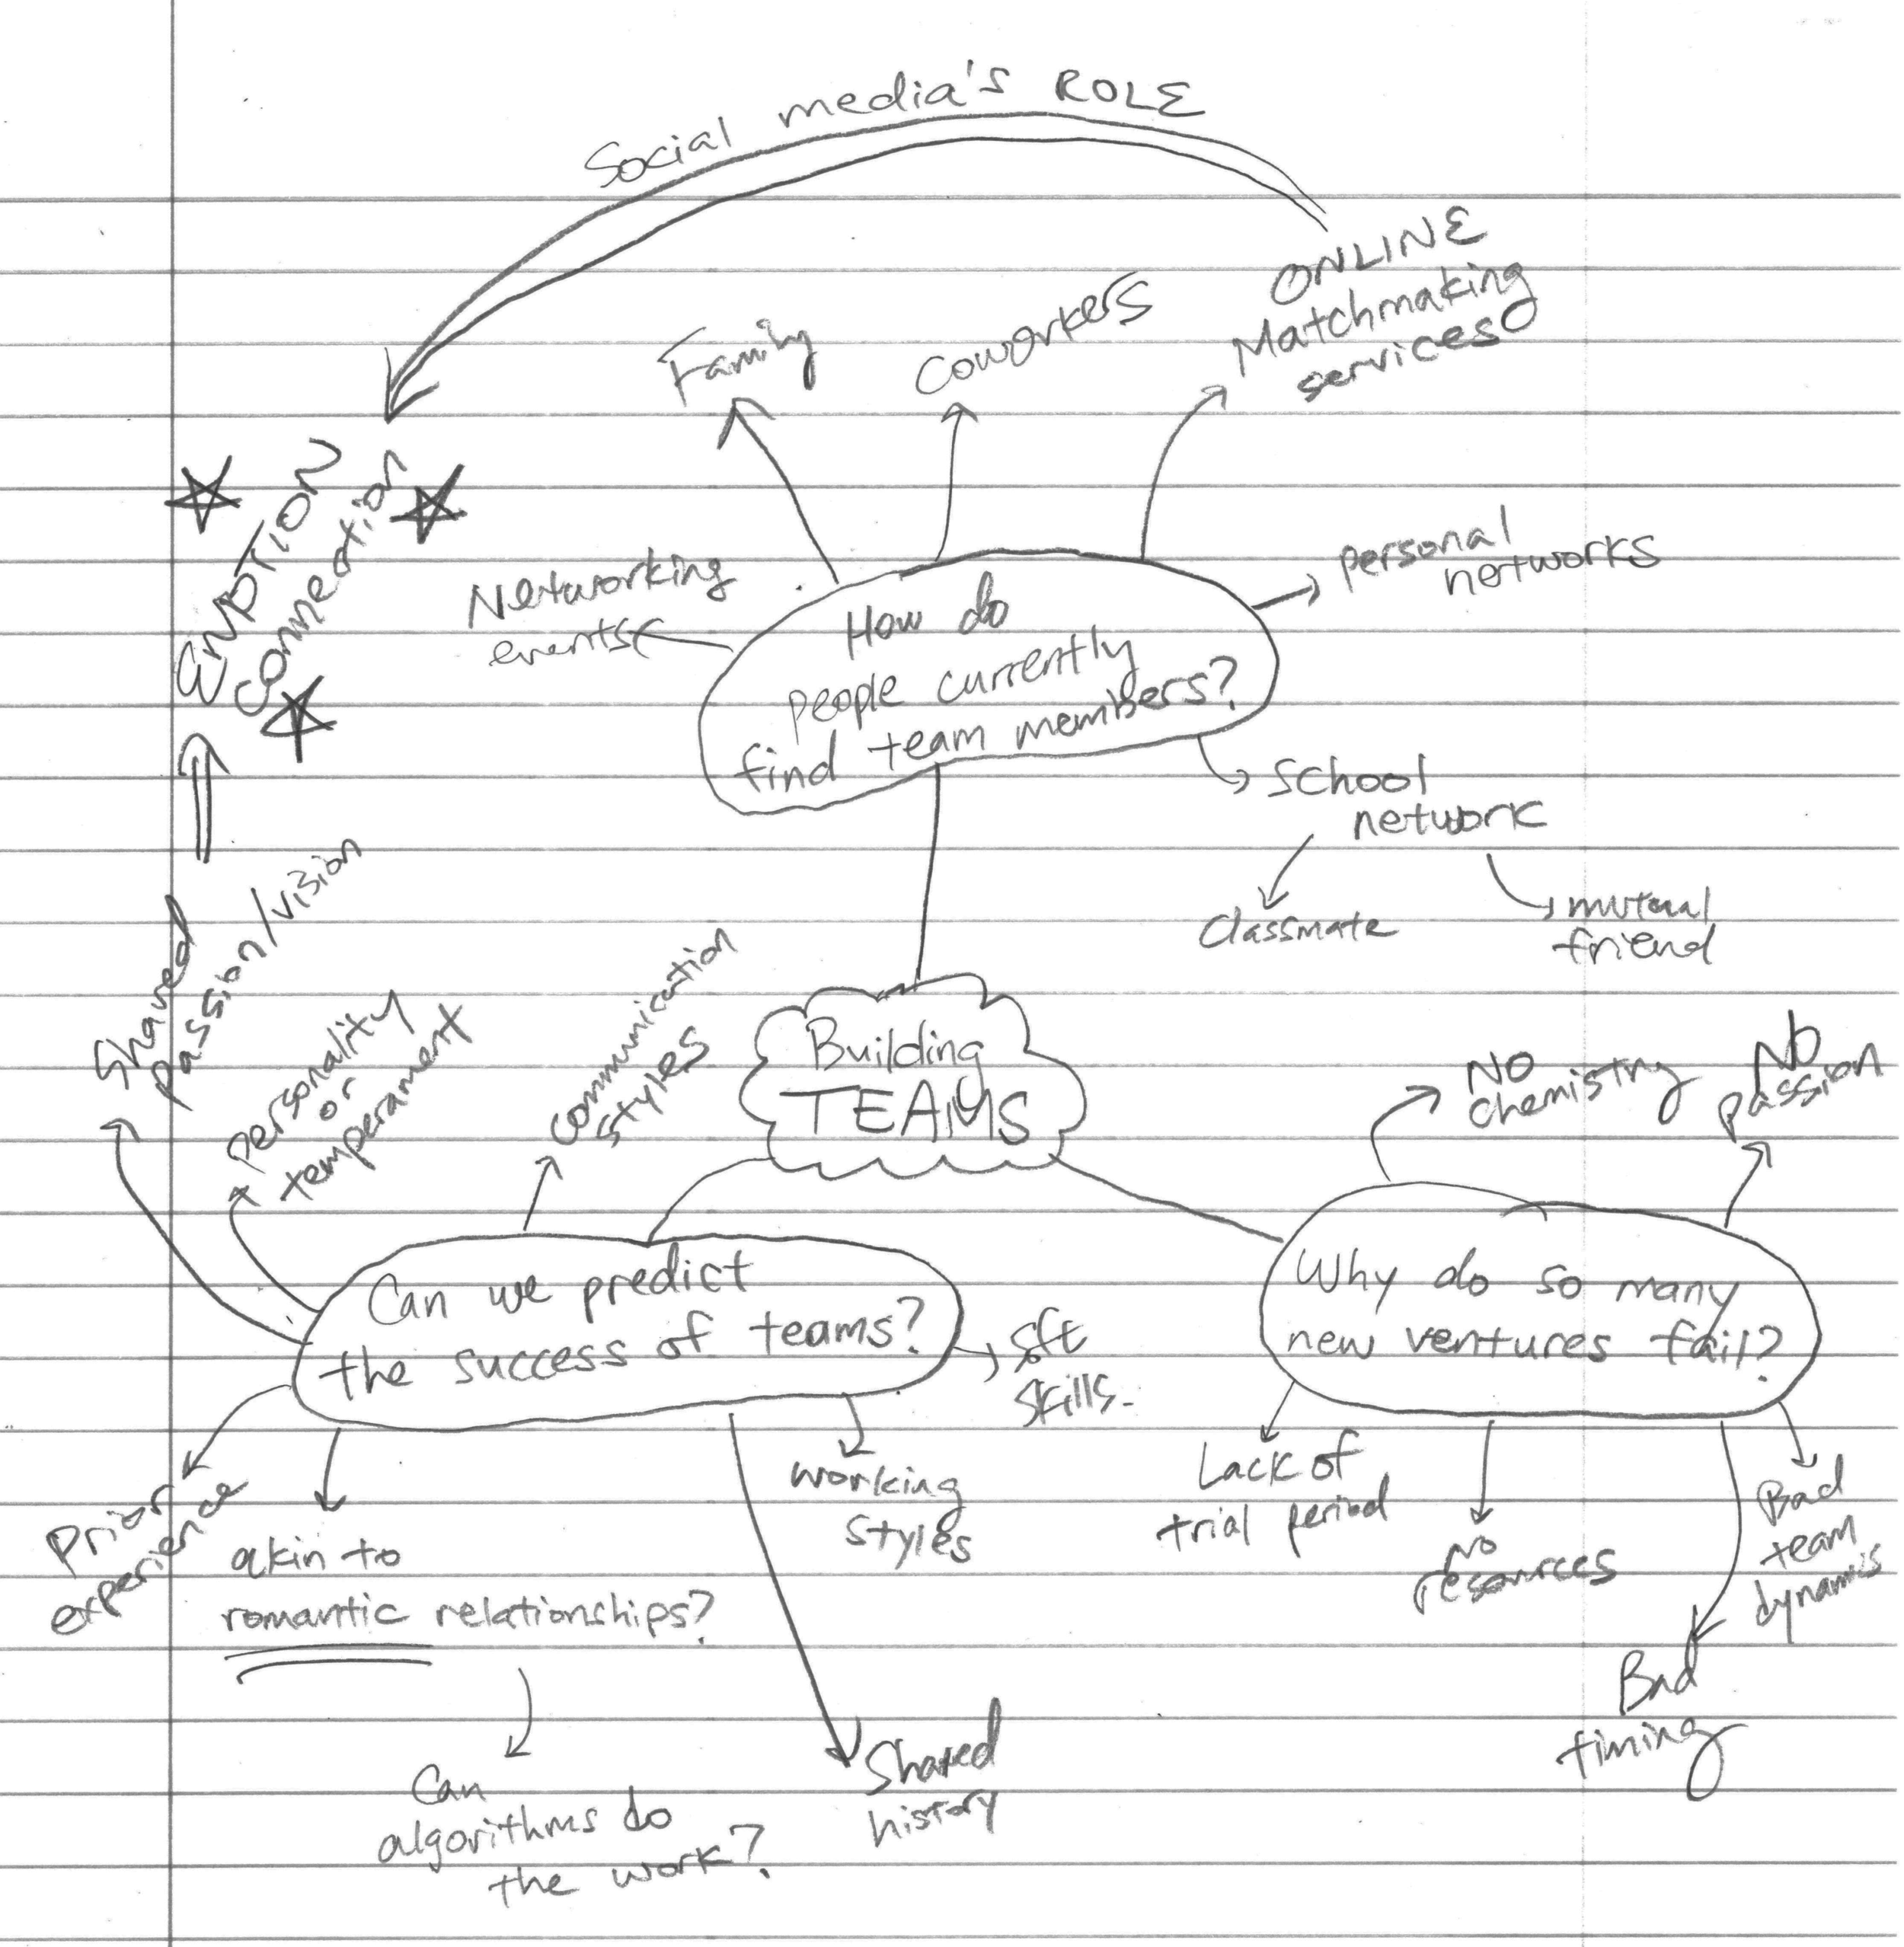 my mind map of initial thoughts regarding the team-building process